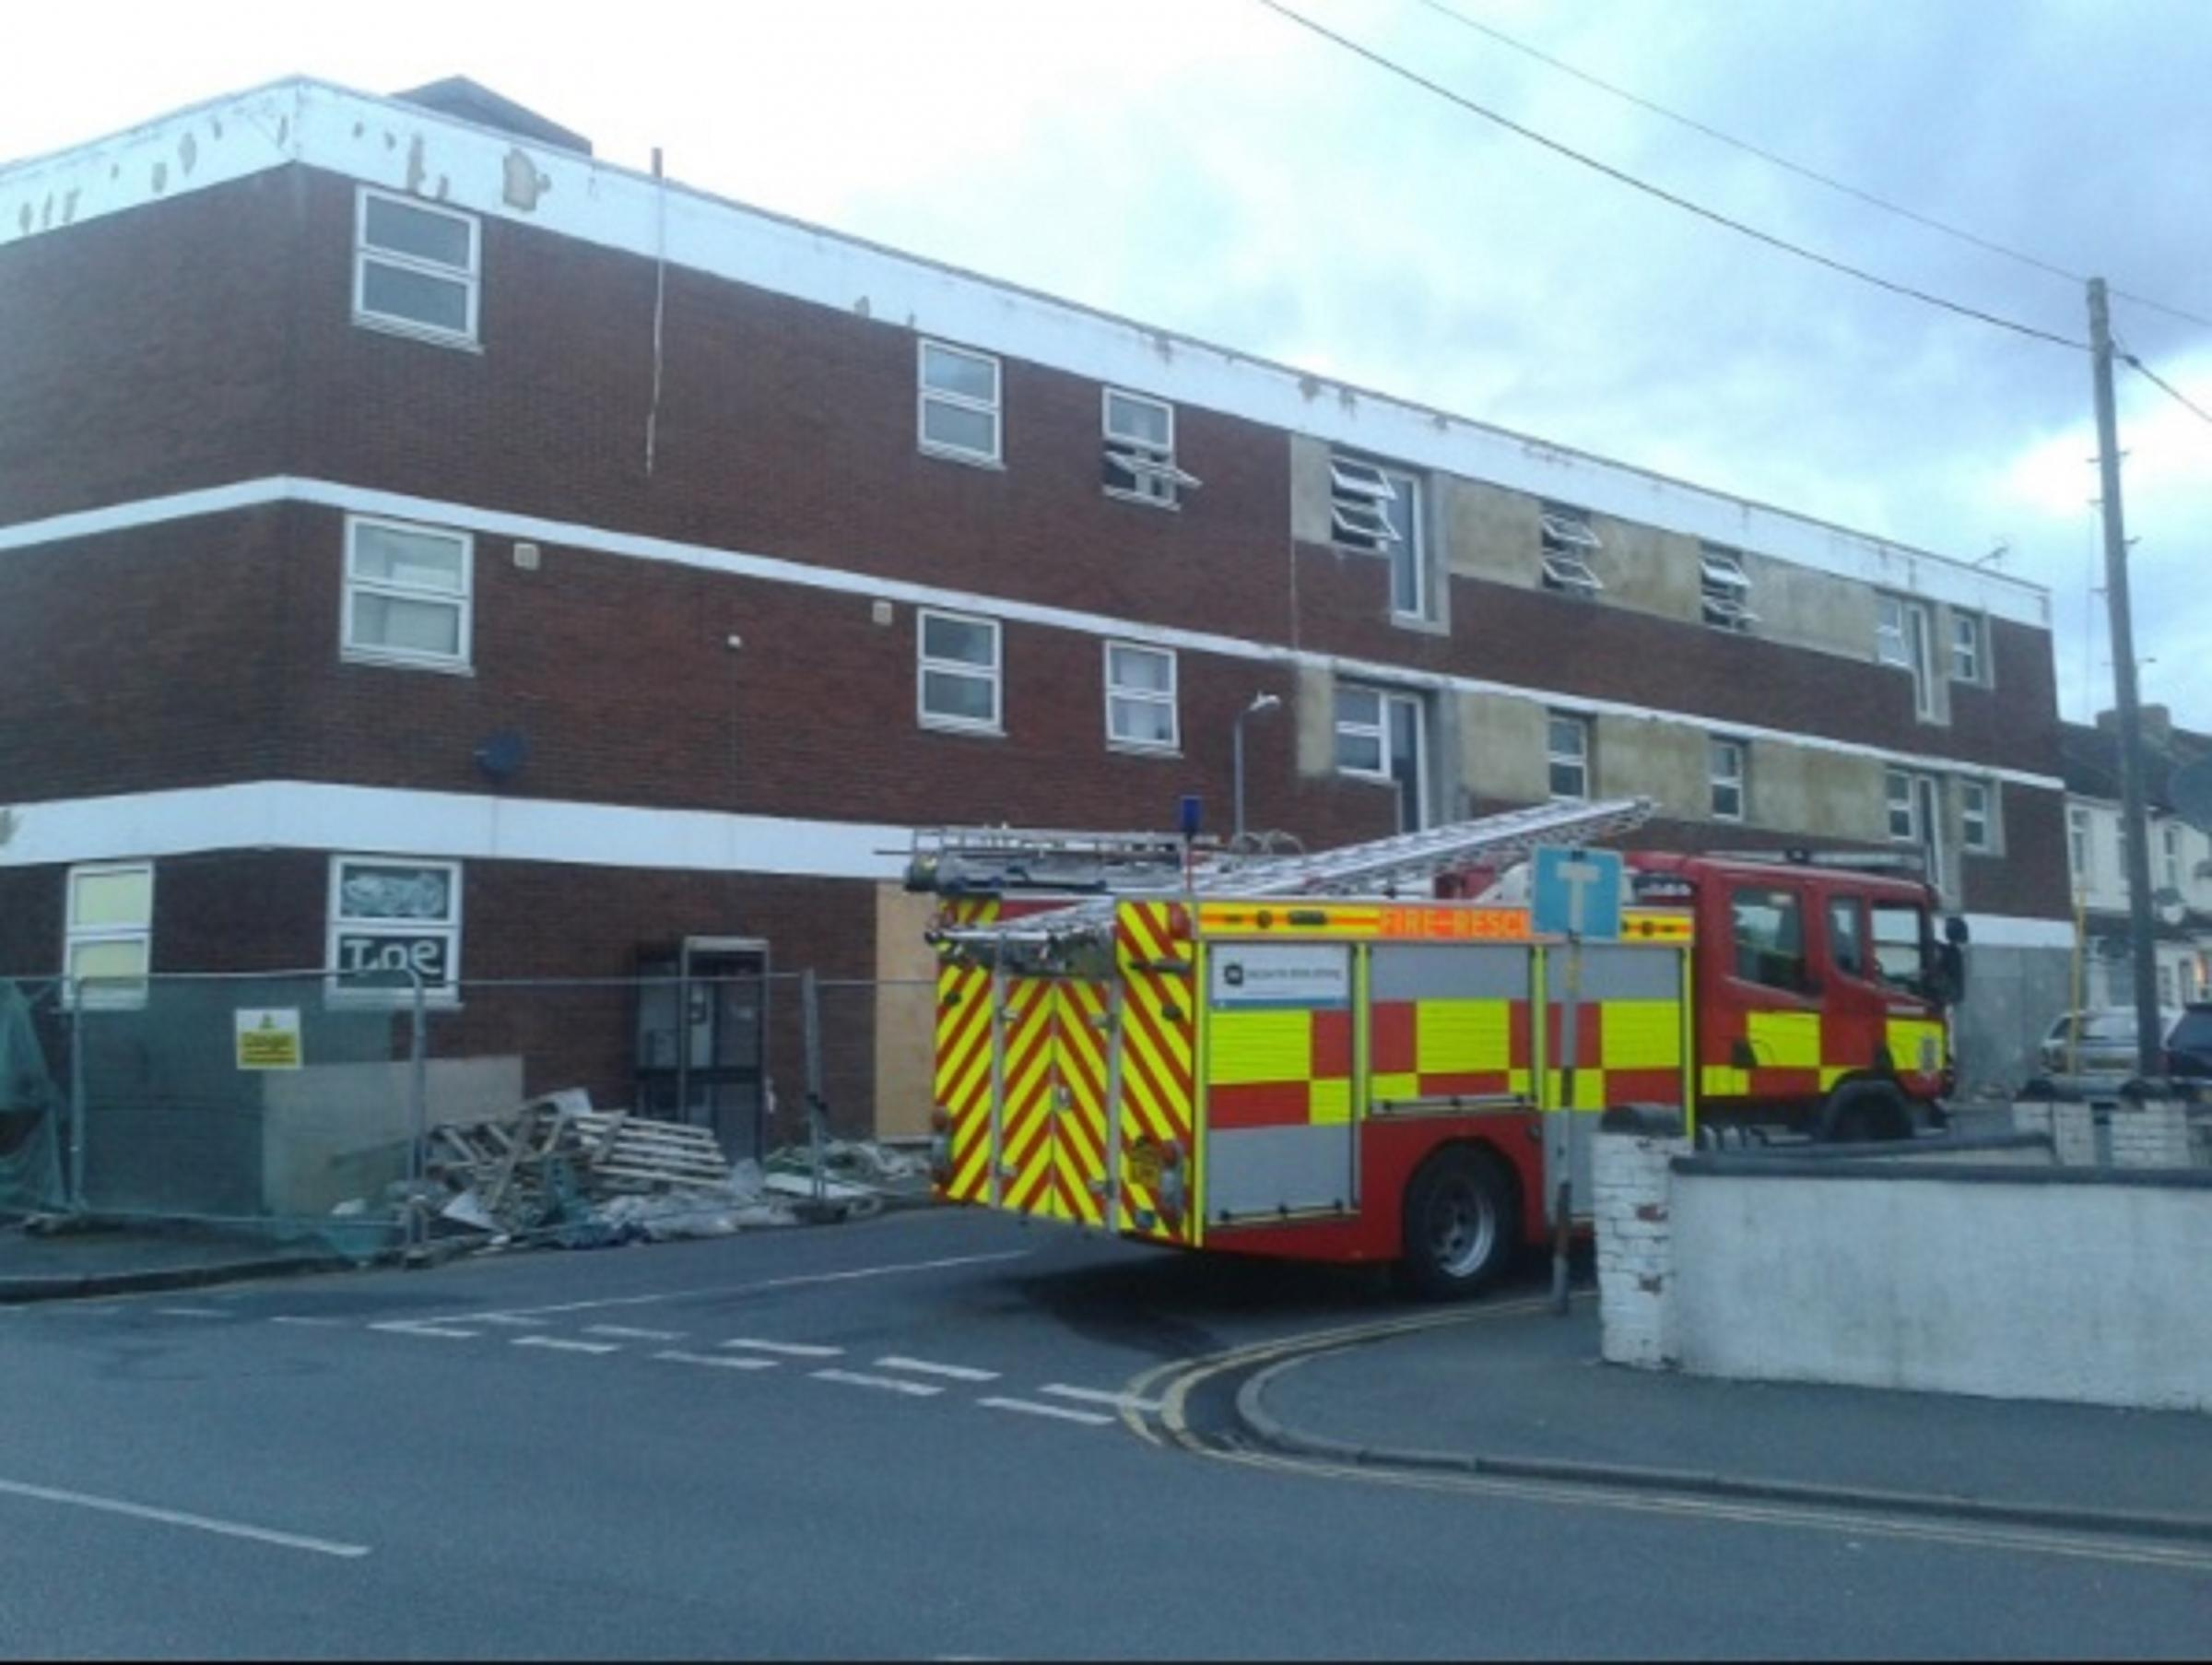 Fire fighters tackle derelict building blaze